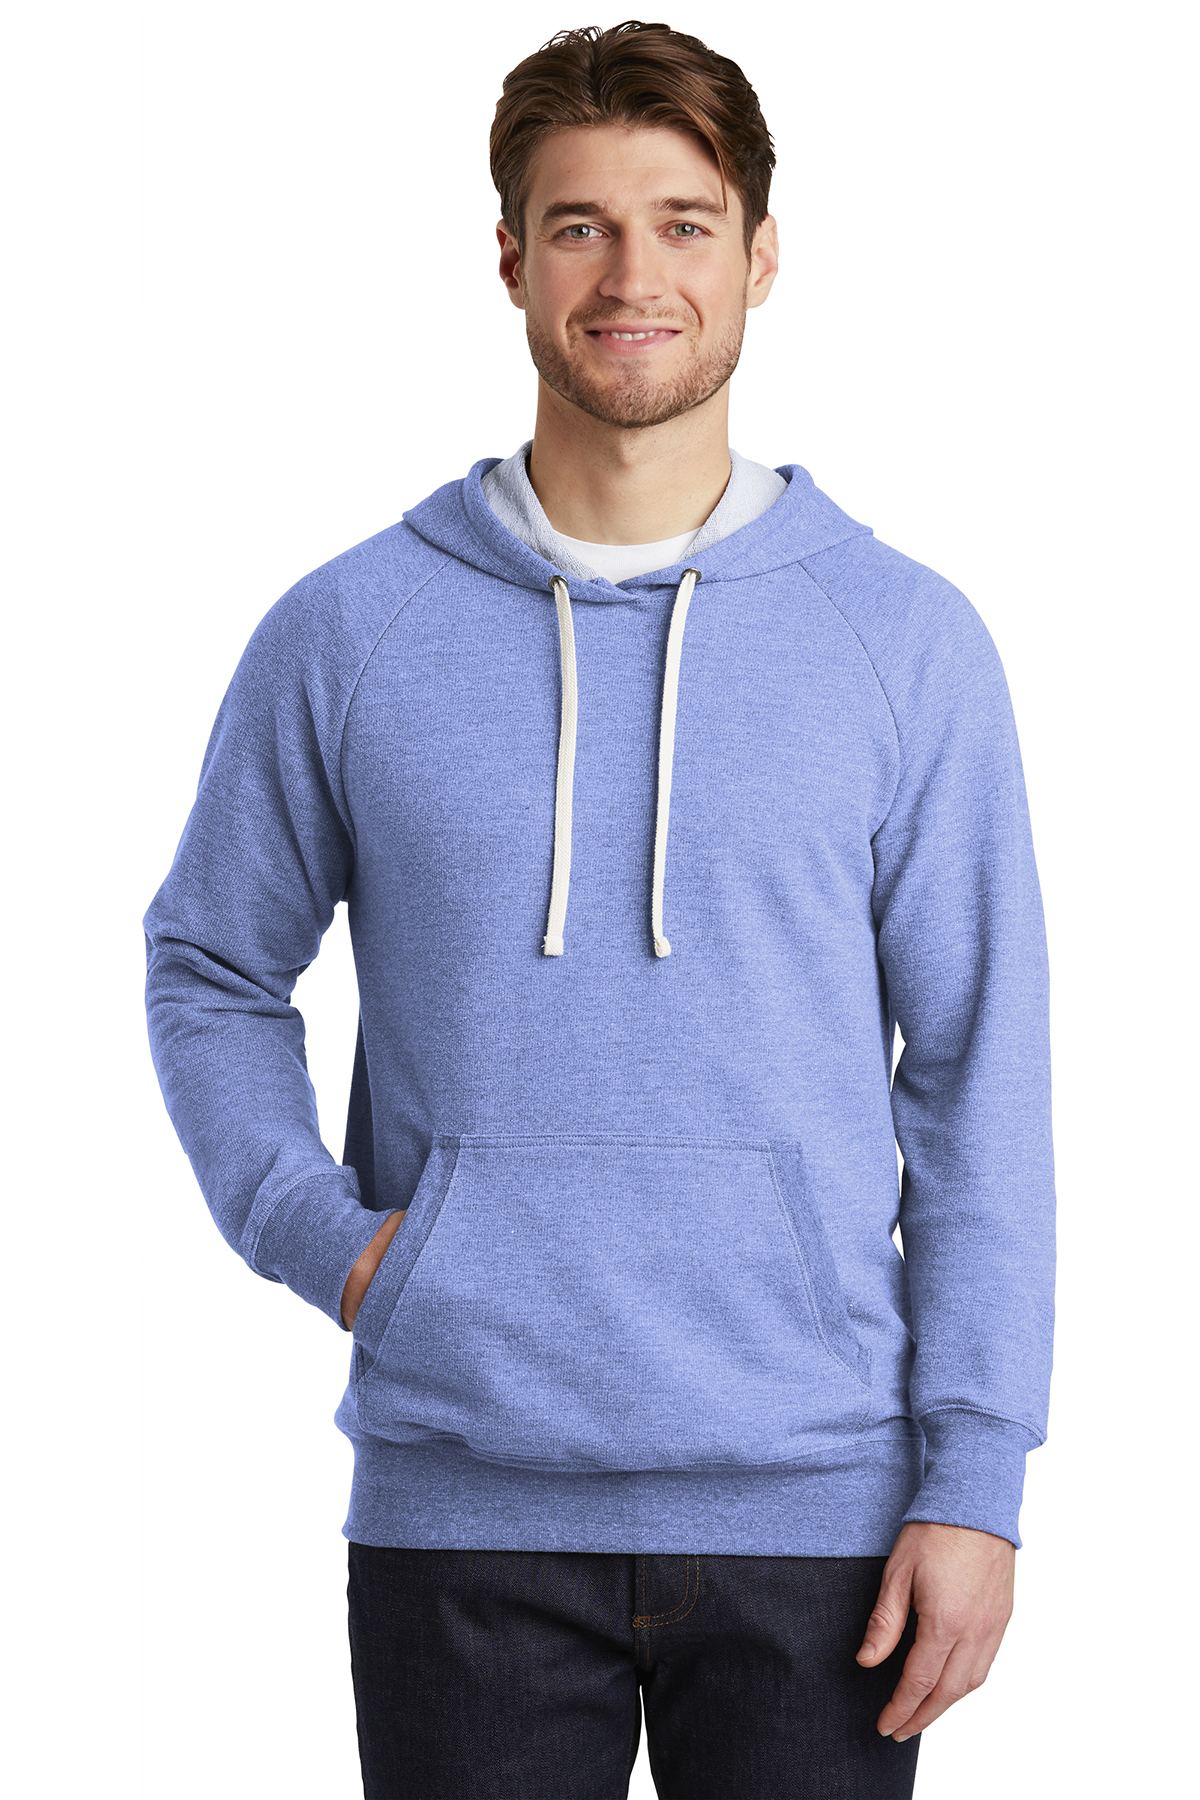 District DT355 - Perfect Tri French Terry Hoodie